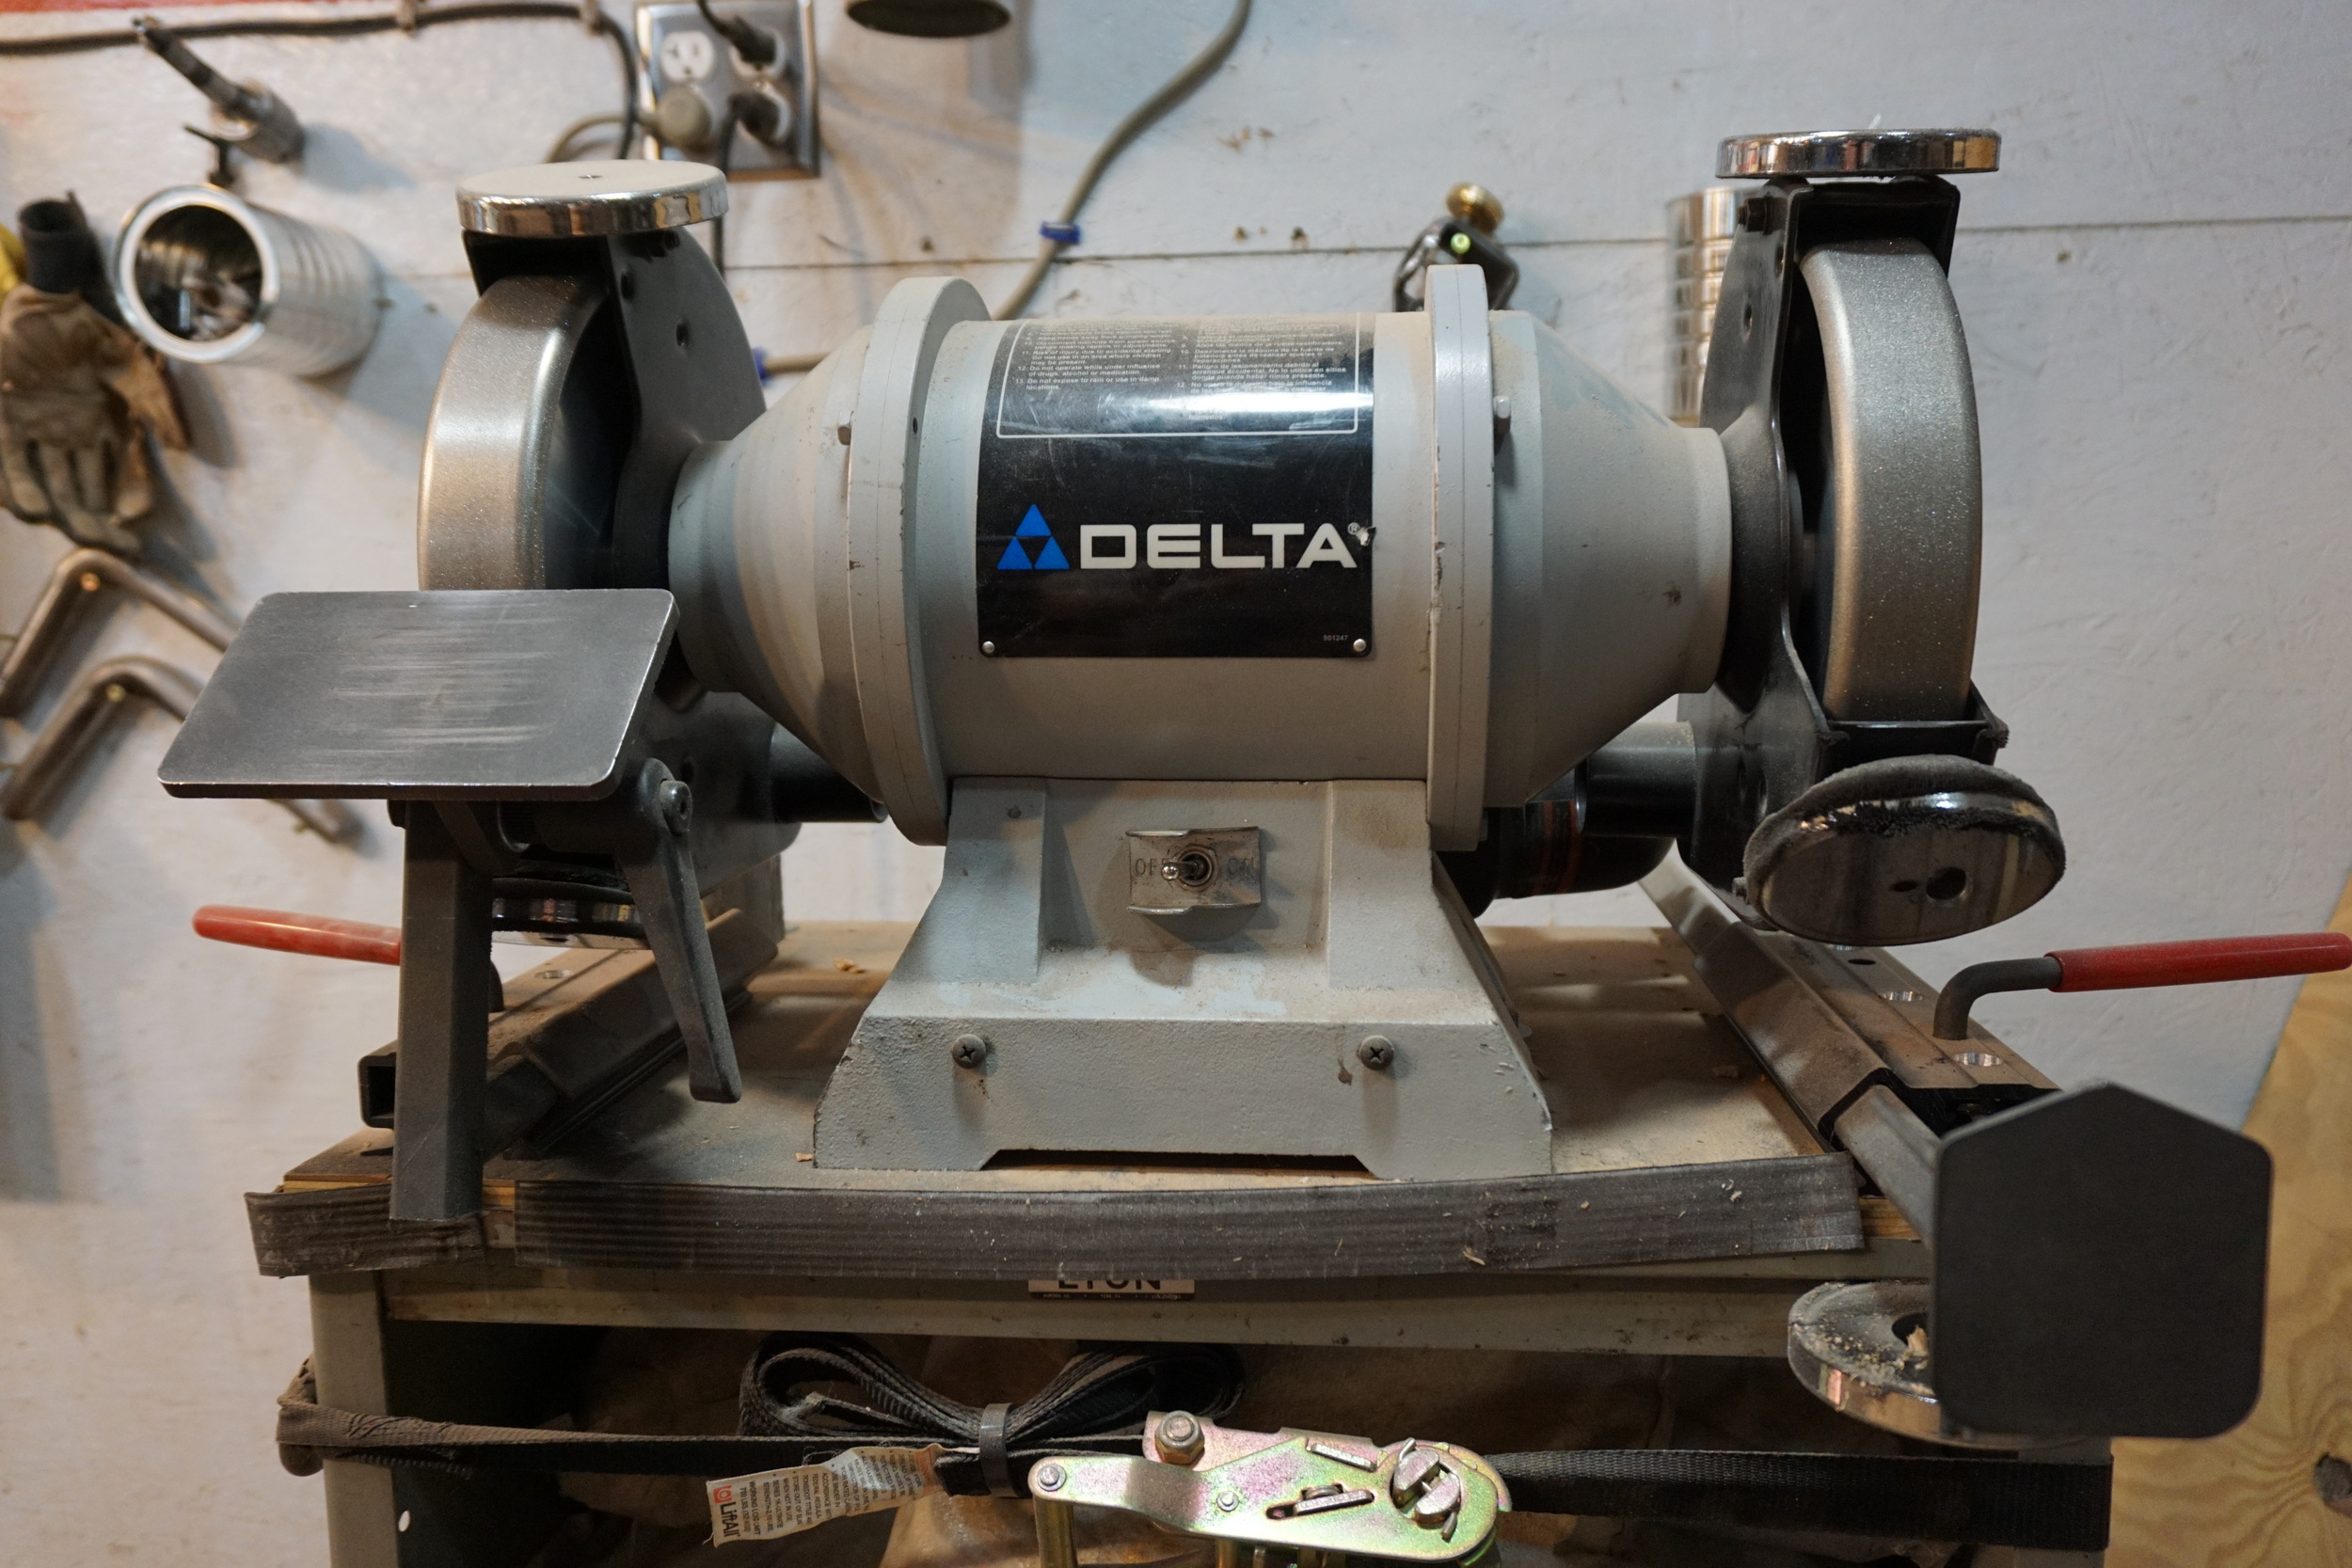 Bench grinder w/ 350 & 600 grit CBN wheels & magnets for ground metal collection